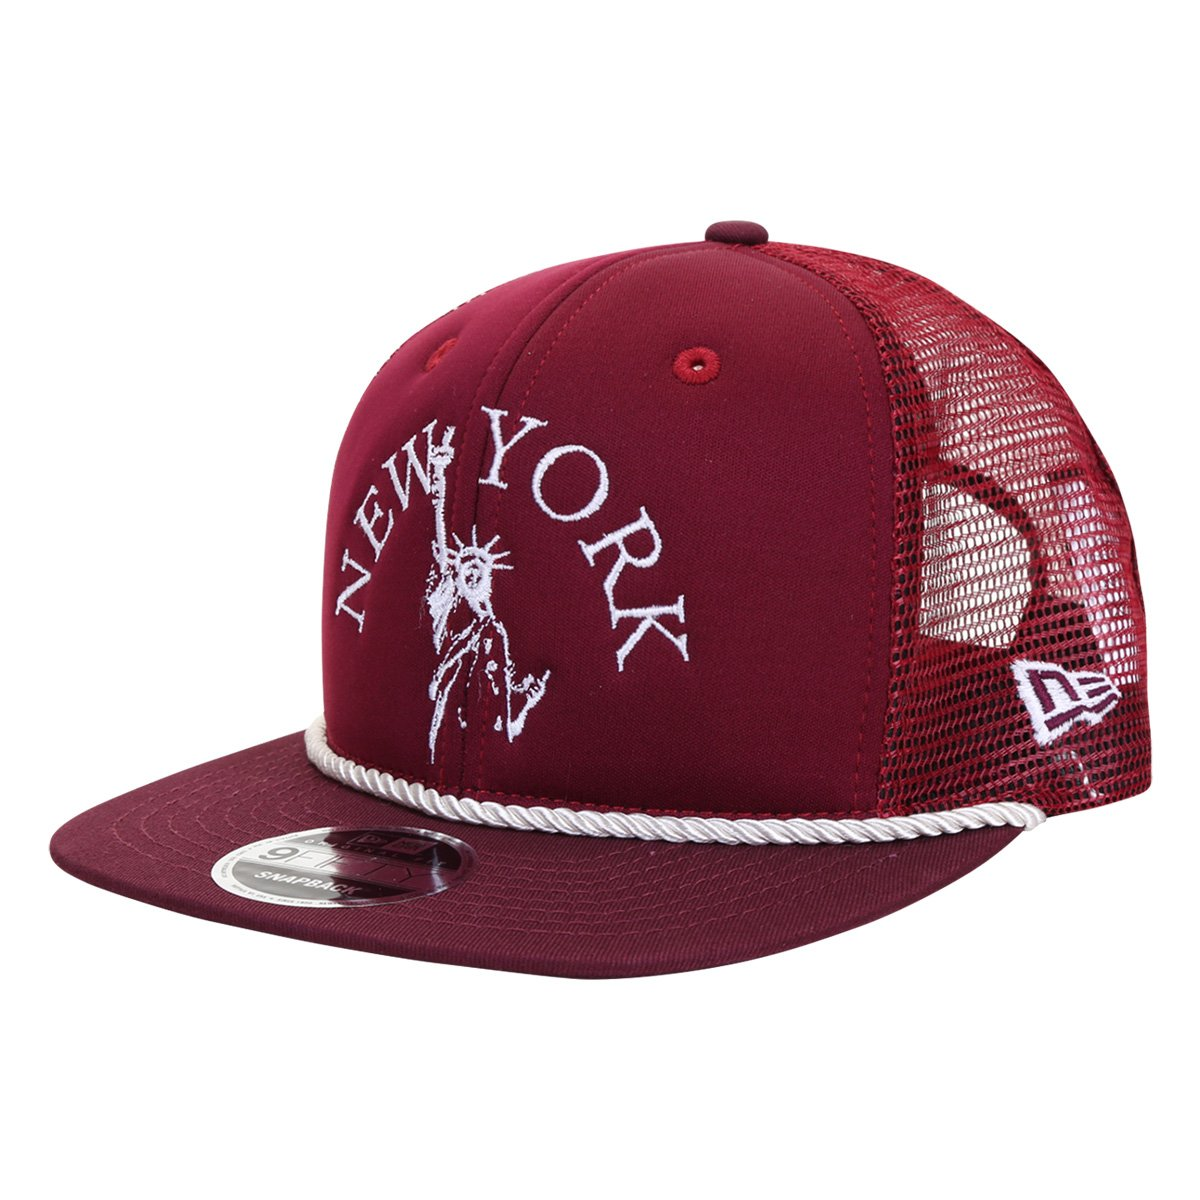 Boné New Era Aba Reta Snapback 950 Of New York Liberty Maroon